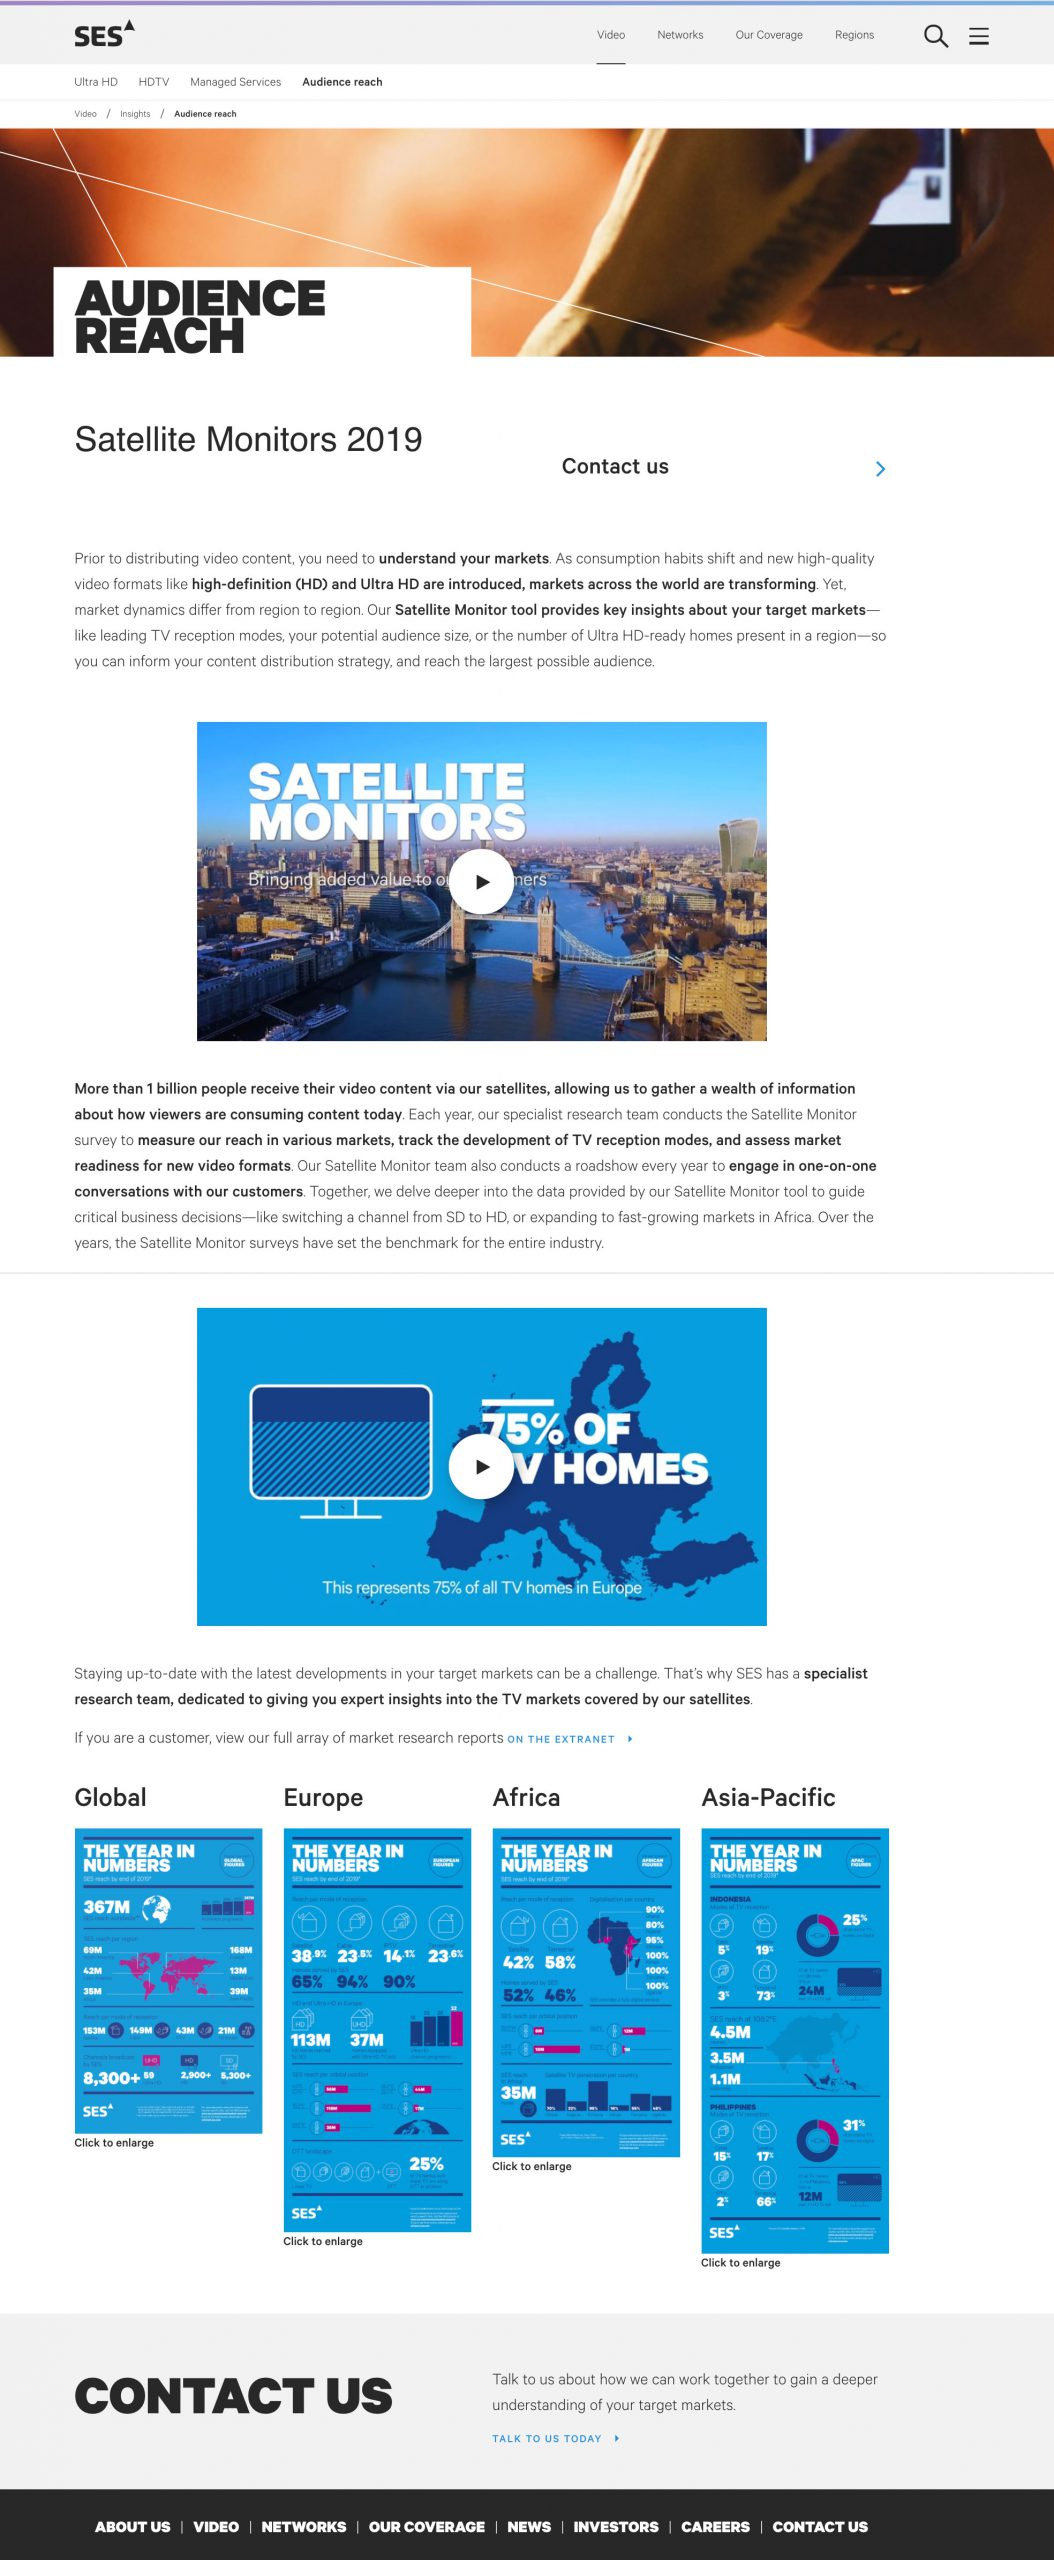 A image showing the web content created for the campaign.